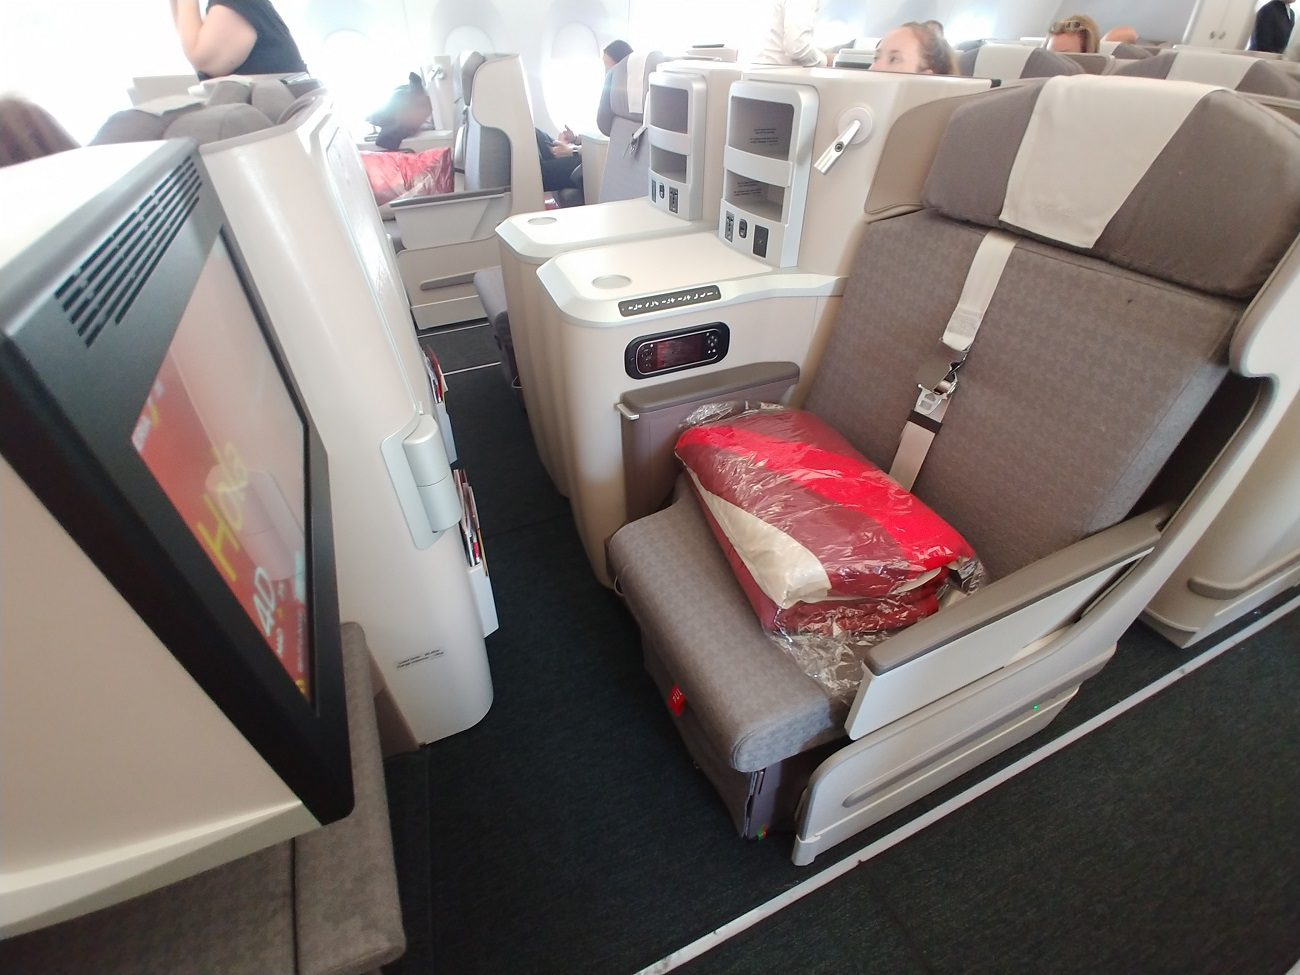 [Confirmed for USA residents] WOW: 17K Business class to/from Europe on Iberia through March 2021